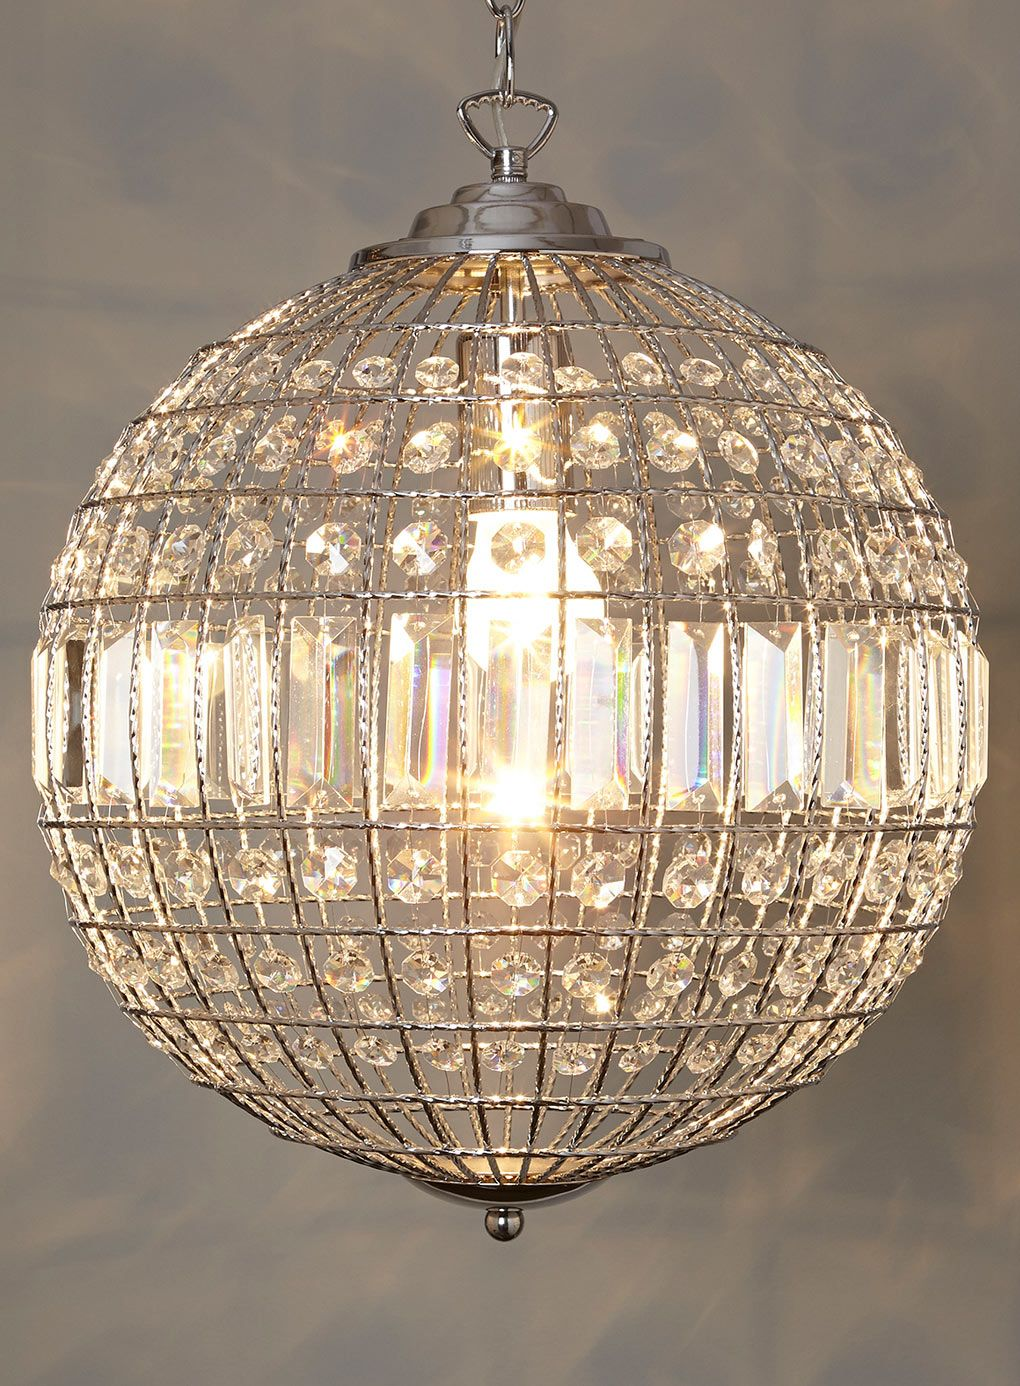 Ursula small crystal ball pendant - Lighting Event - Home, Lighting u0026  Furniture - BHS